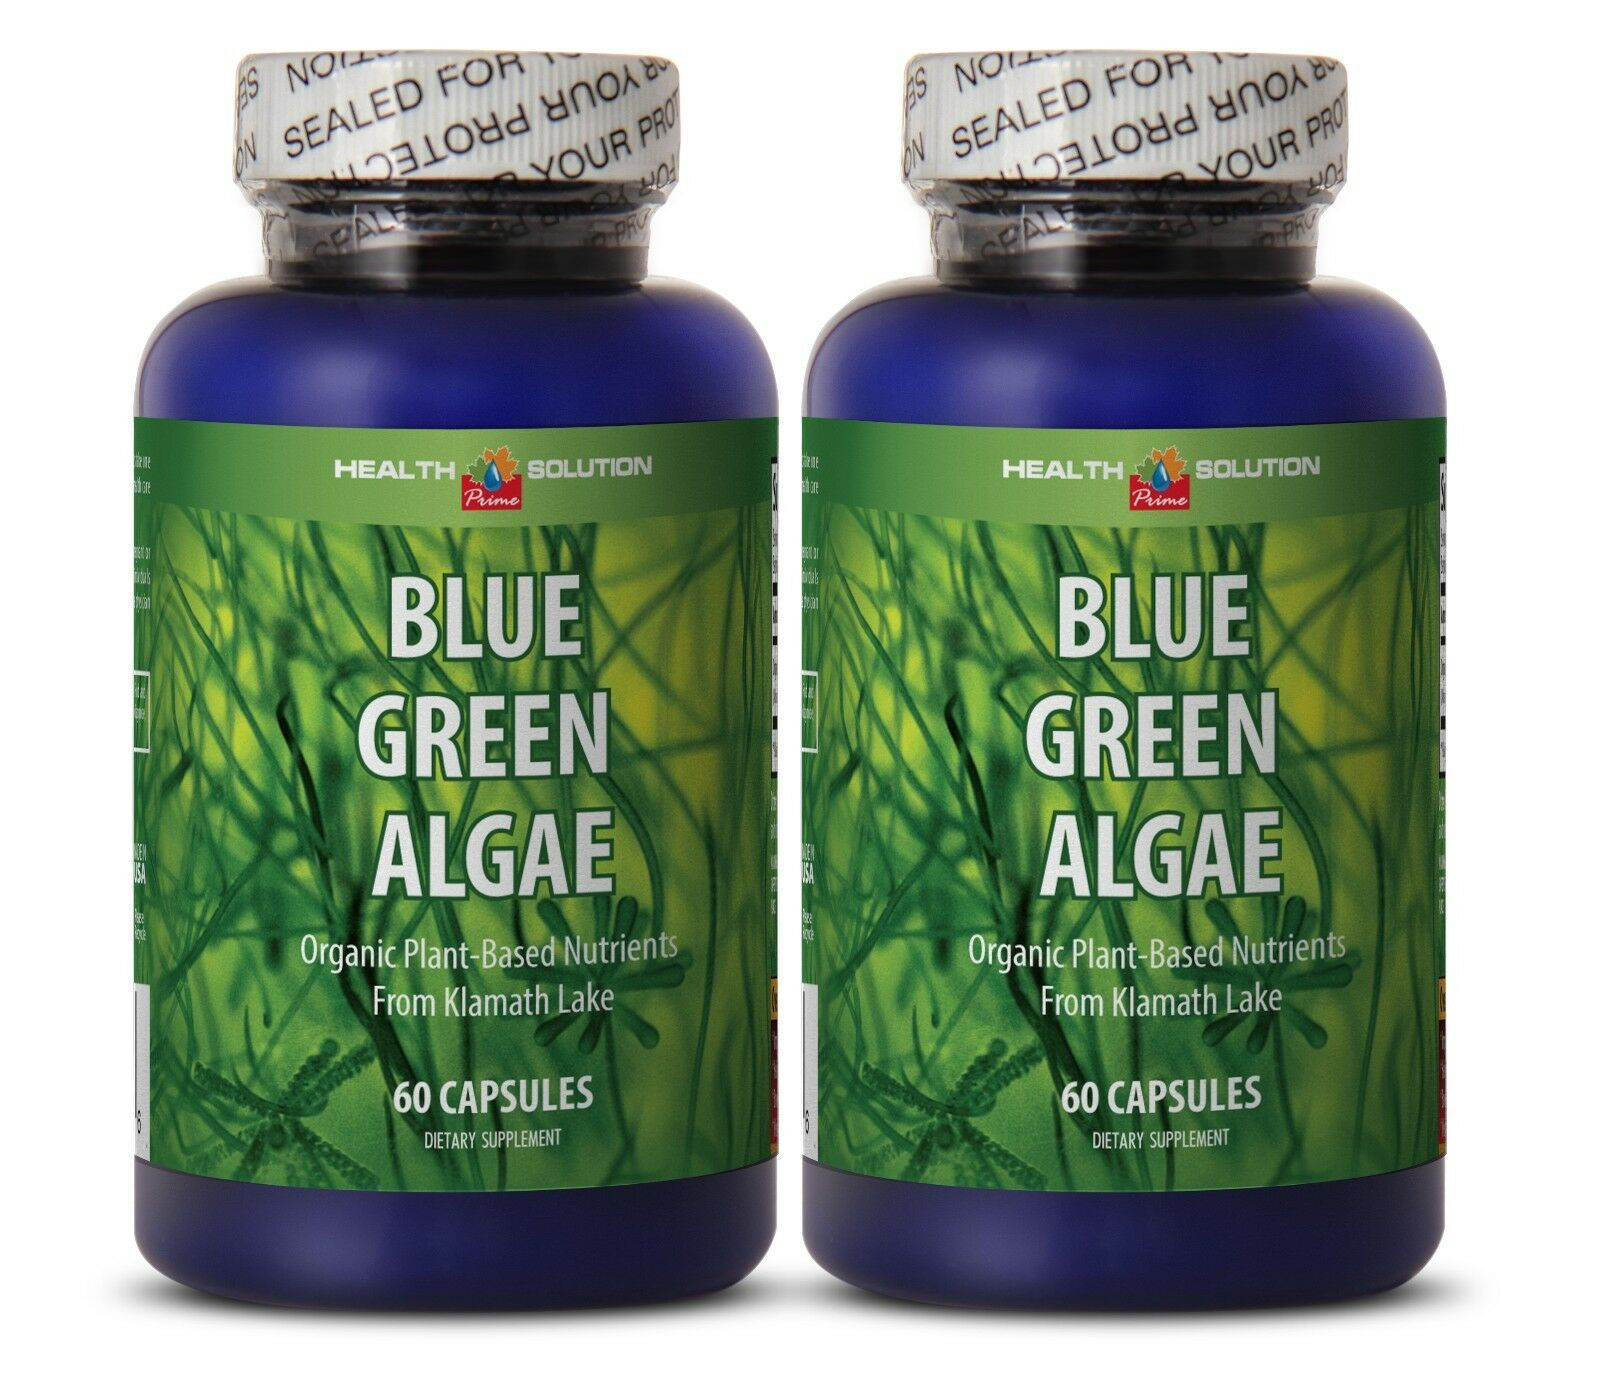 Detoxes Body Fully - Organic Blue Green Algae - Blue Green &